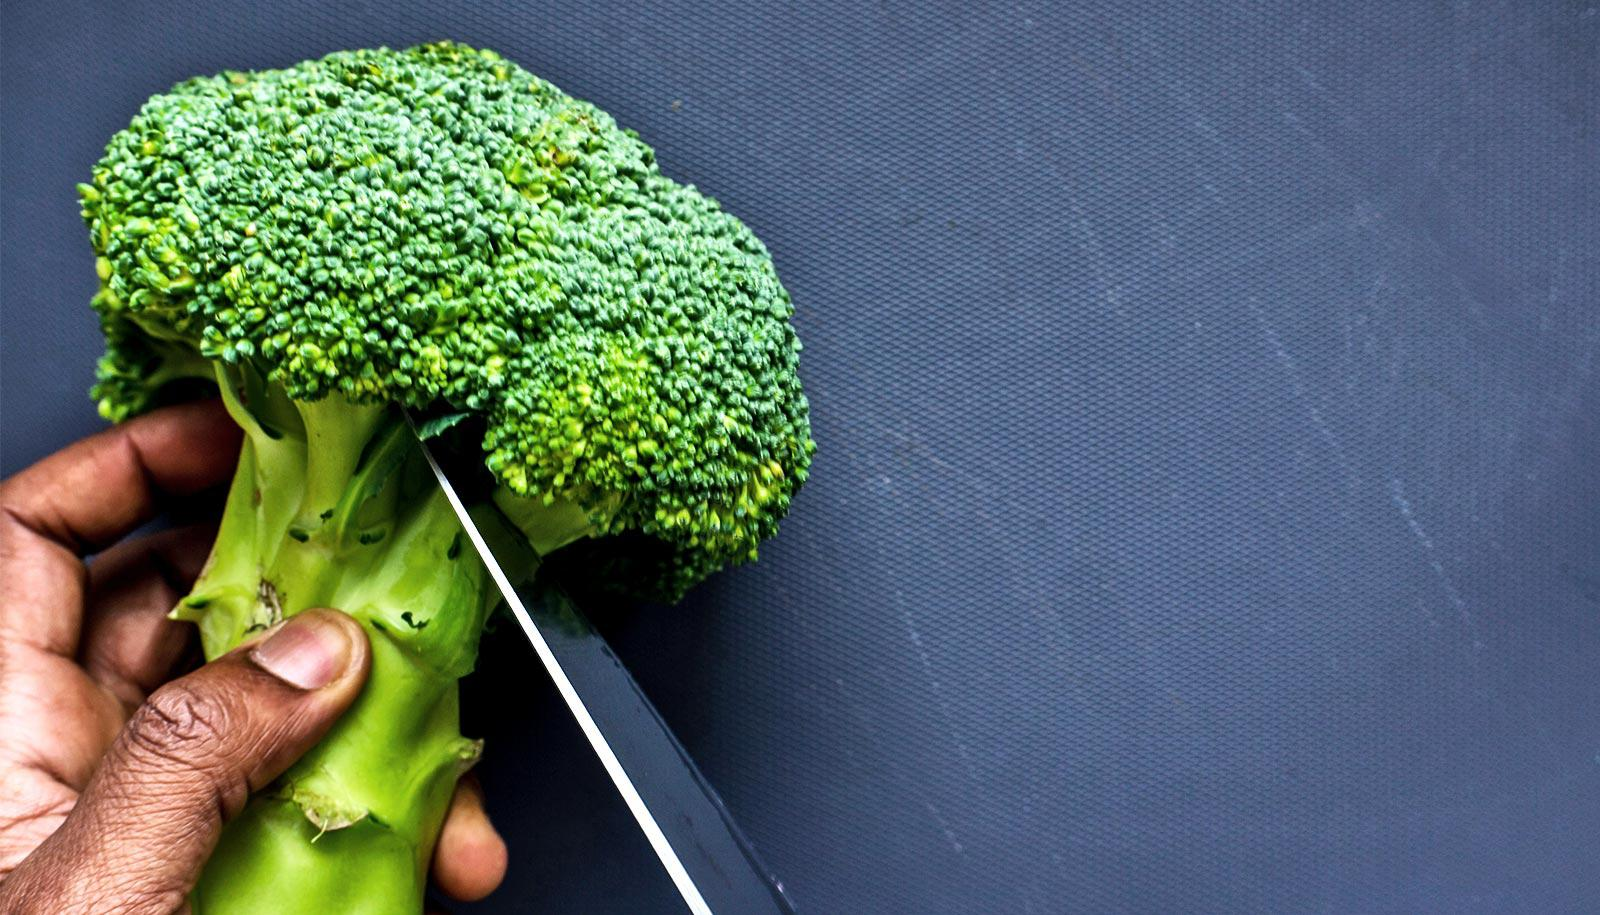 A person cuts a broccoli floret against a dark blue background (indole)